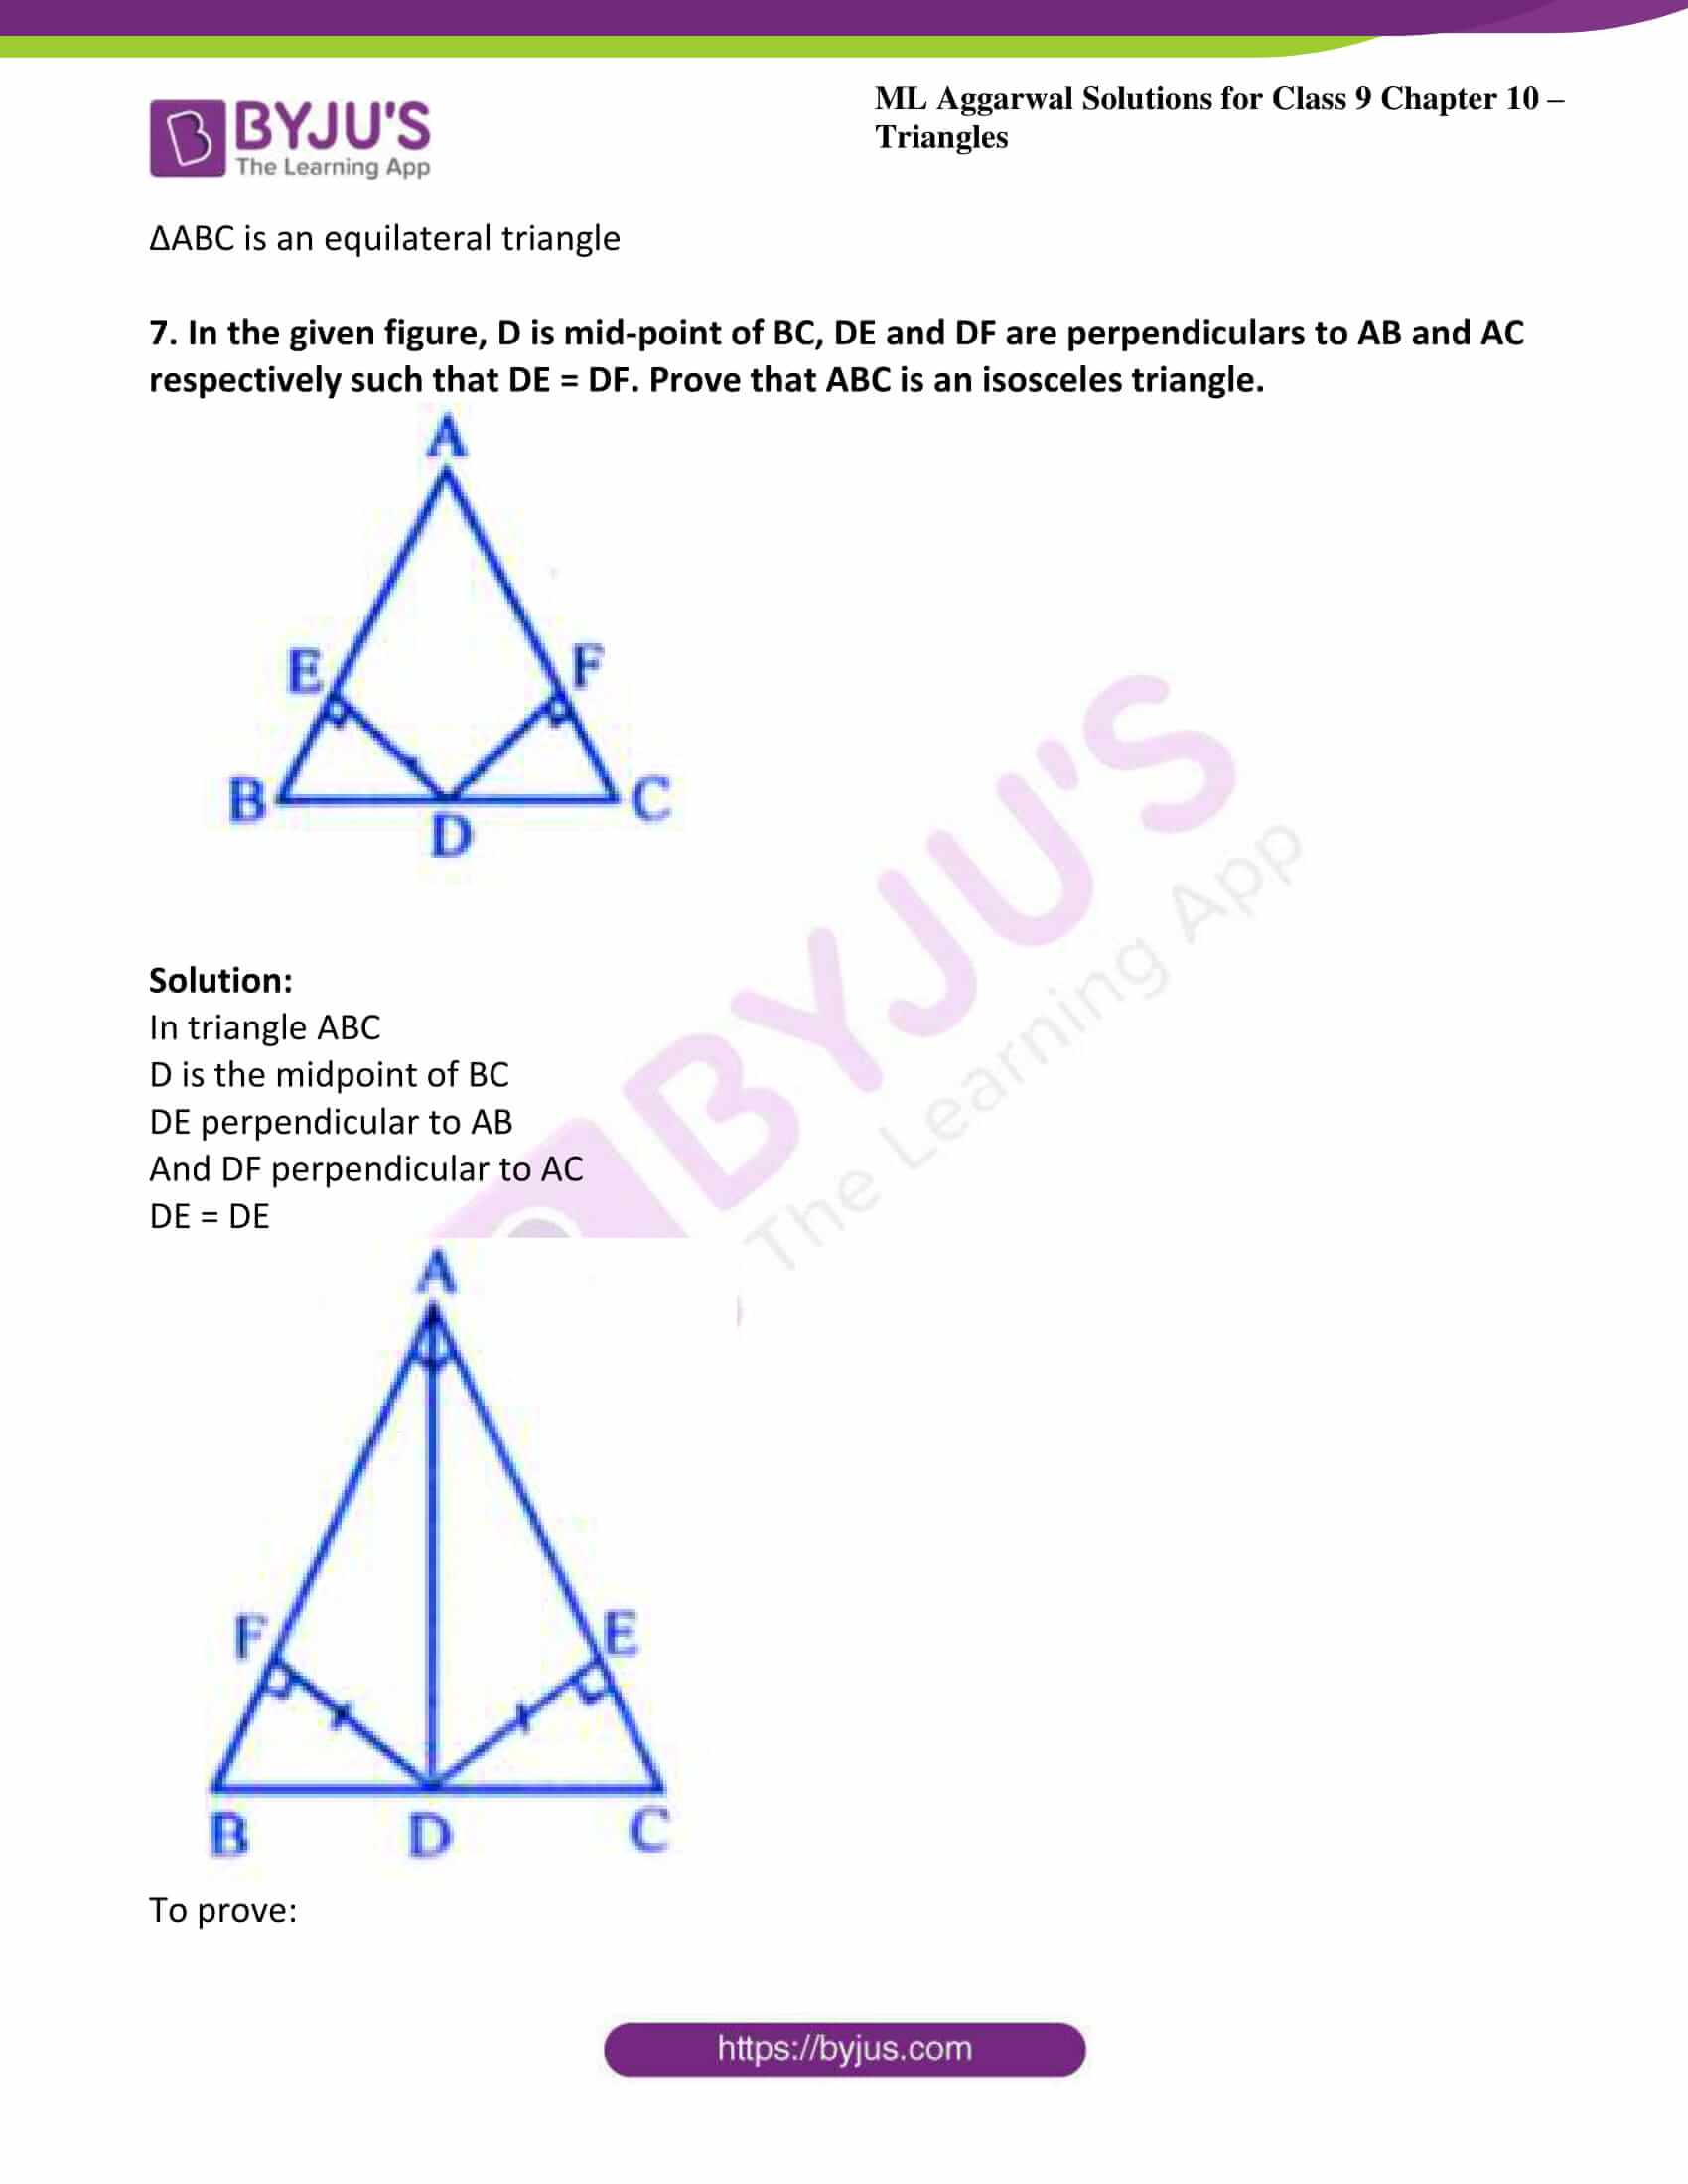 ml aggarwal solutions for class 9 maths chapter 10 23